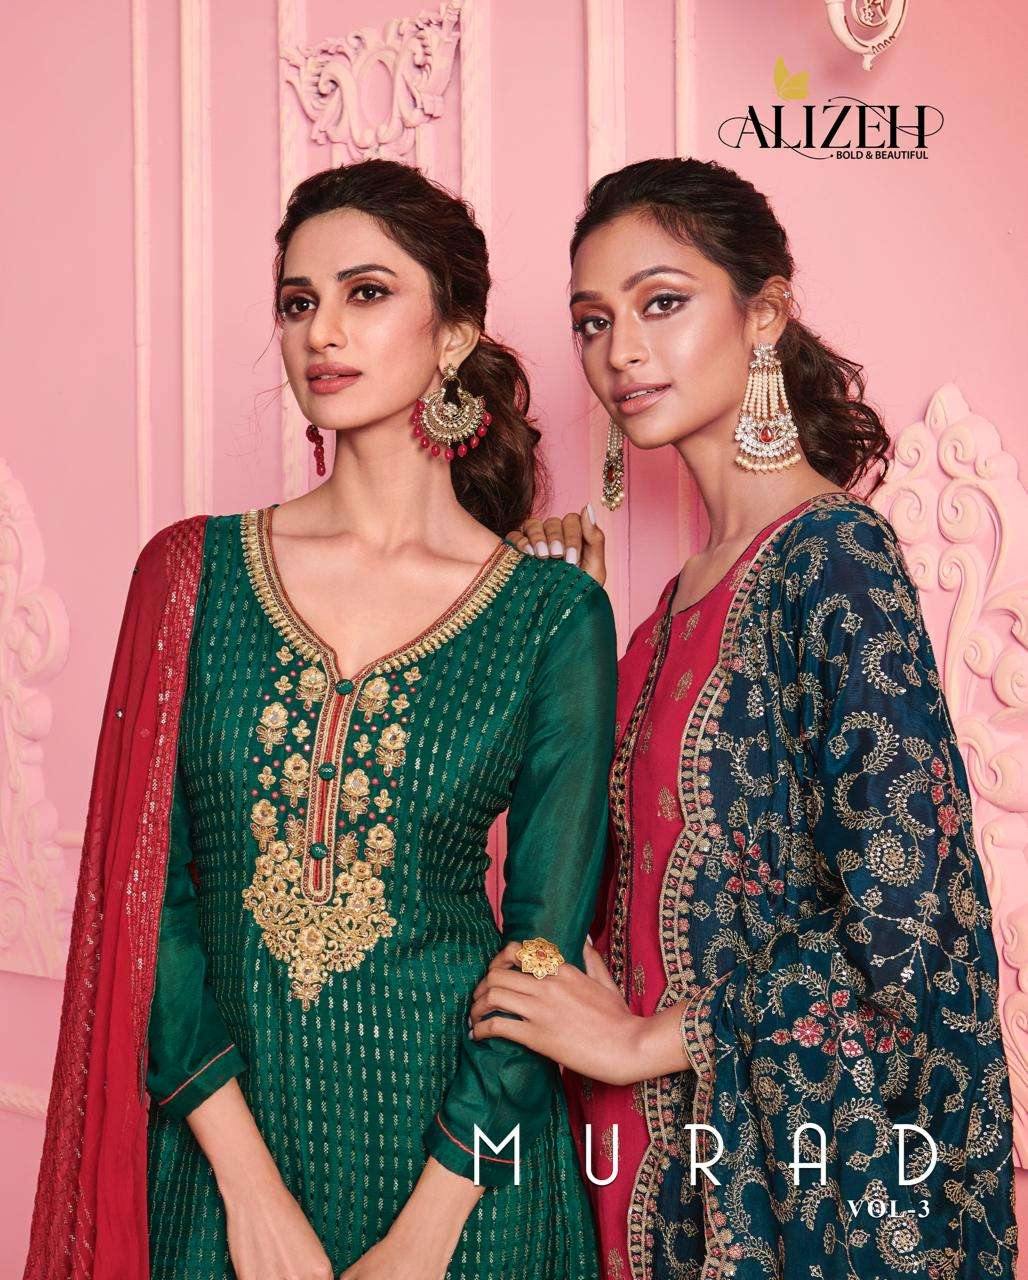 Alizeh Murad Vol 3 Georgette With Thread Zari Embroidery Work Dress Material collection